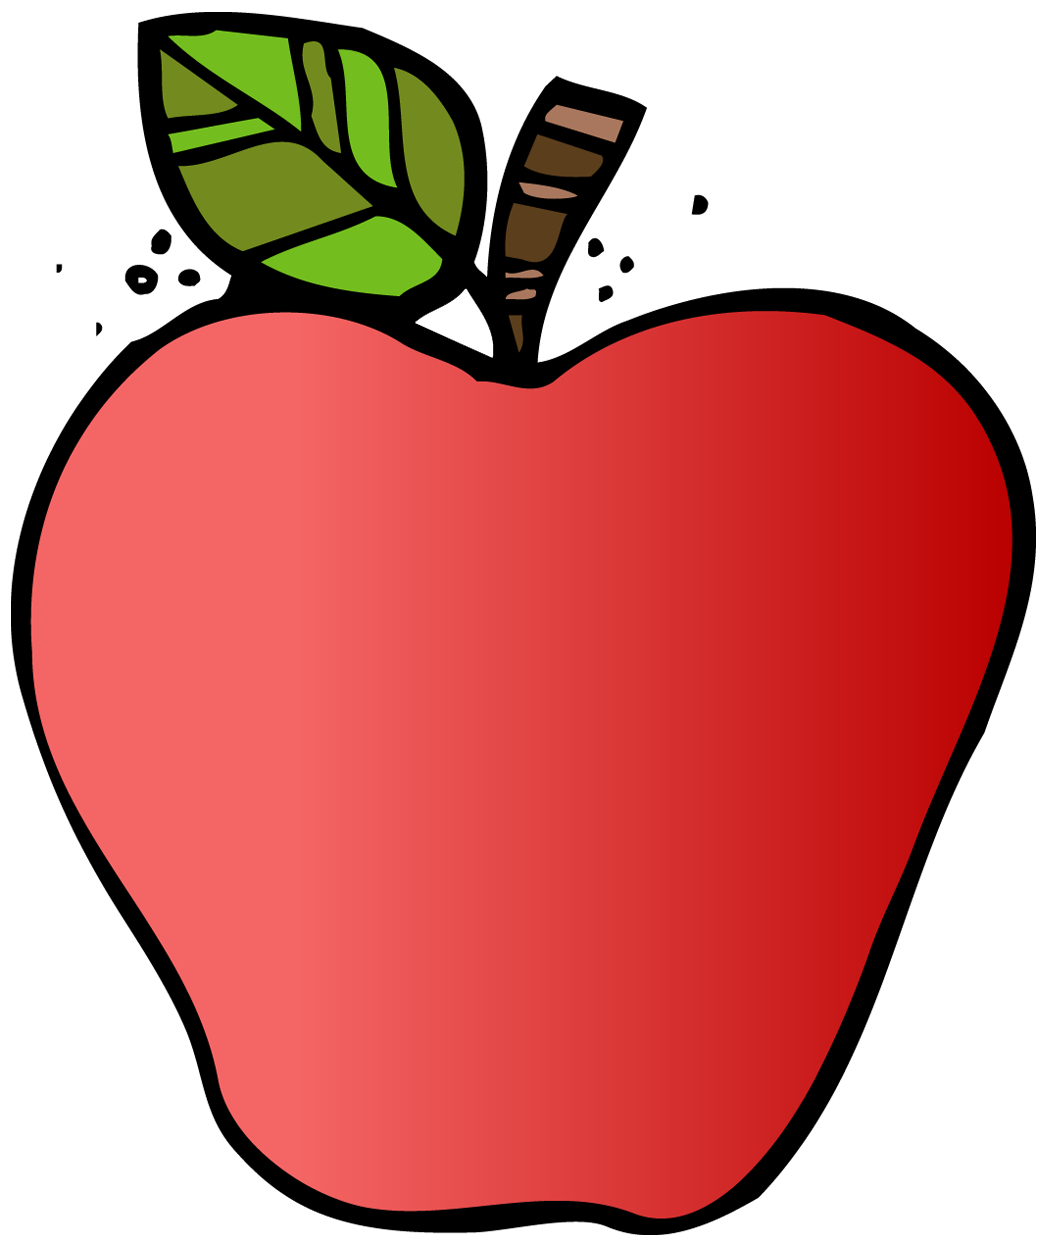 Apple clipart dj inkers clip art library library Free dj inker apple clipart clip art library library